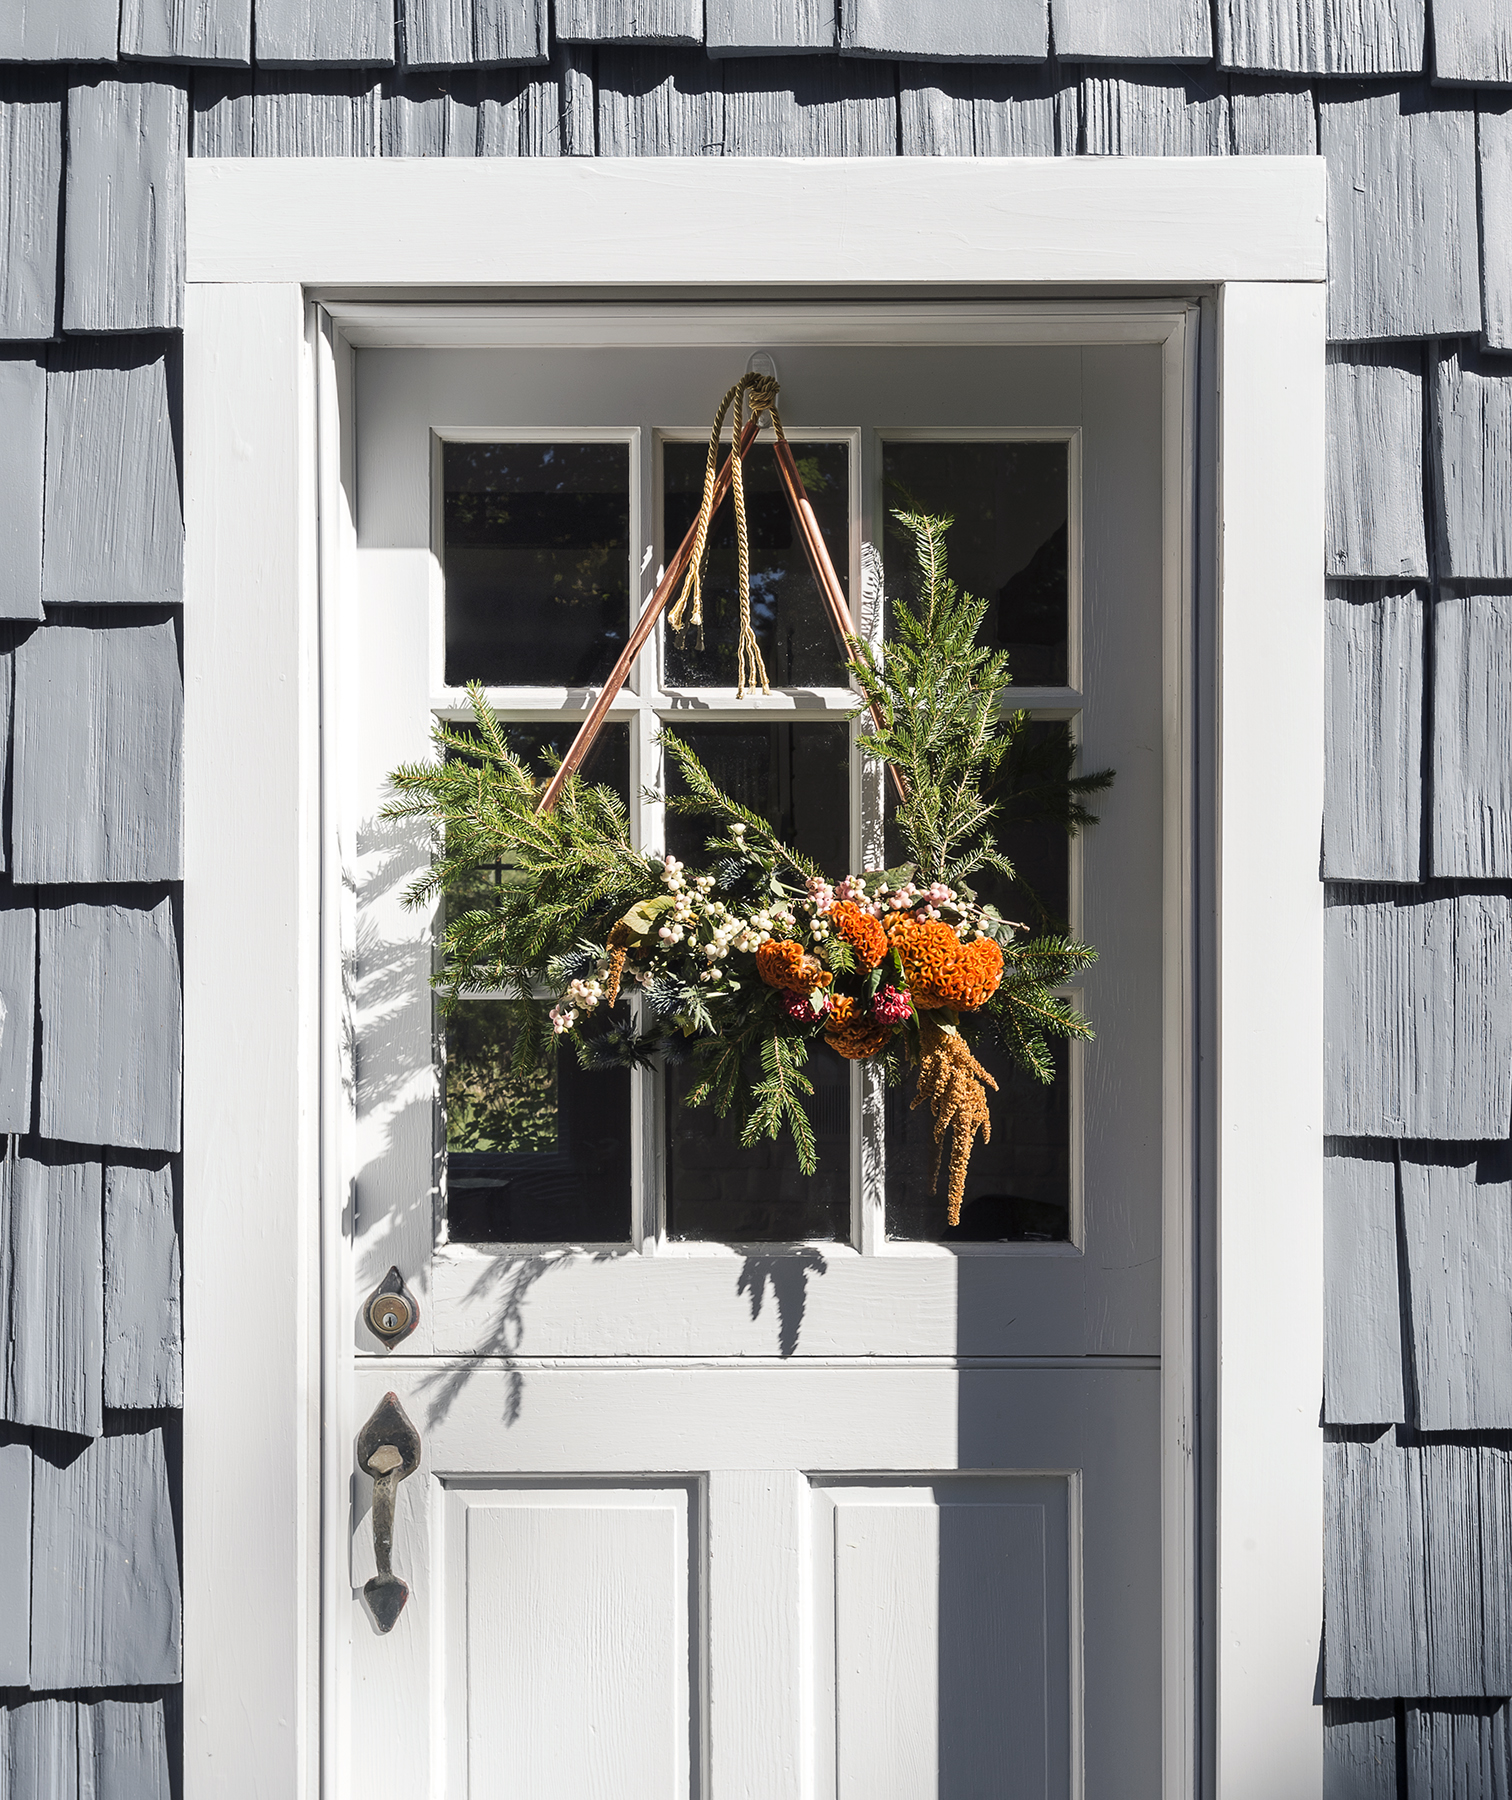 Copper pipe and floral door decor